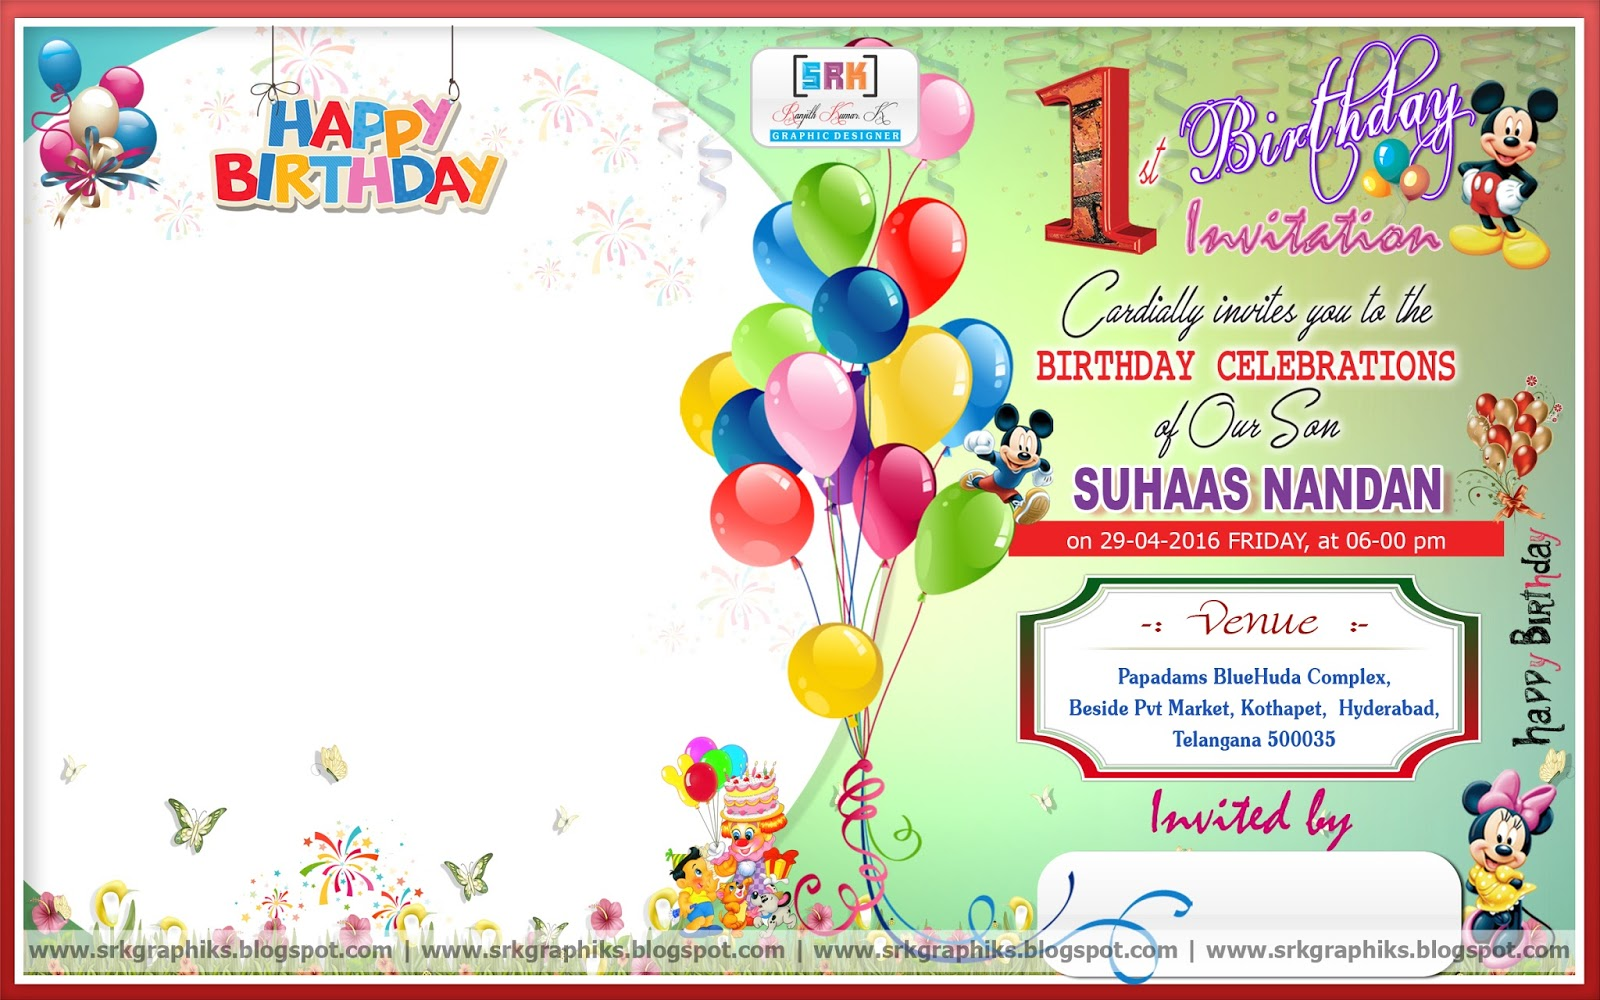 PSD Birthday Invitation Card SRK GRAPHICS - Happy birthday invitation card design